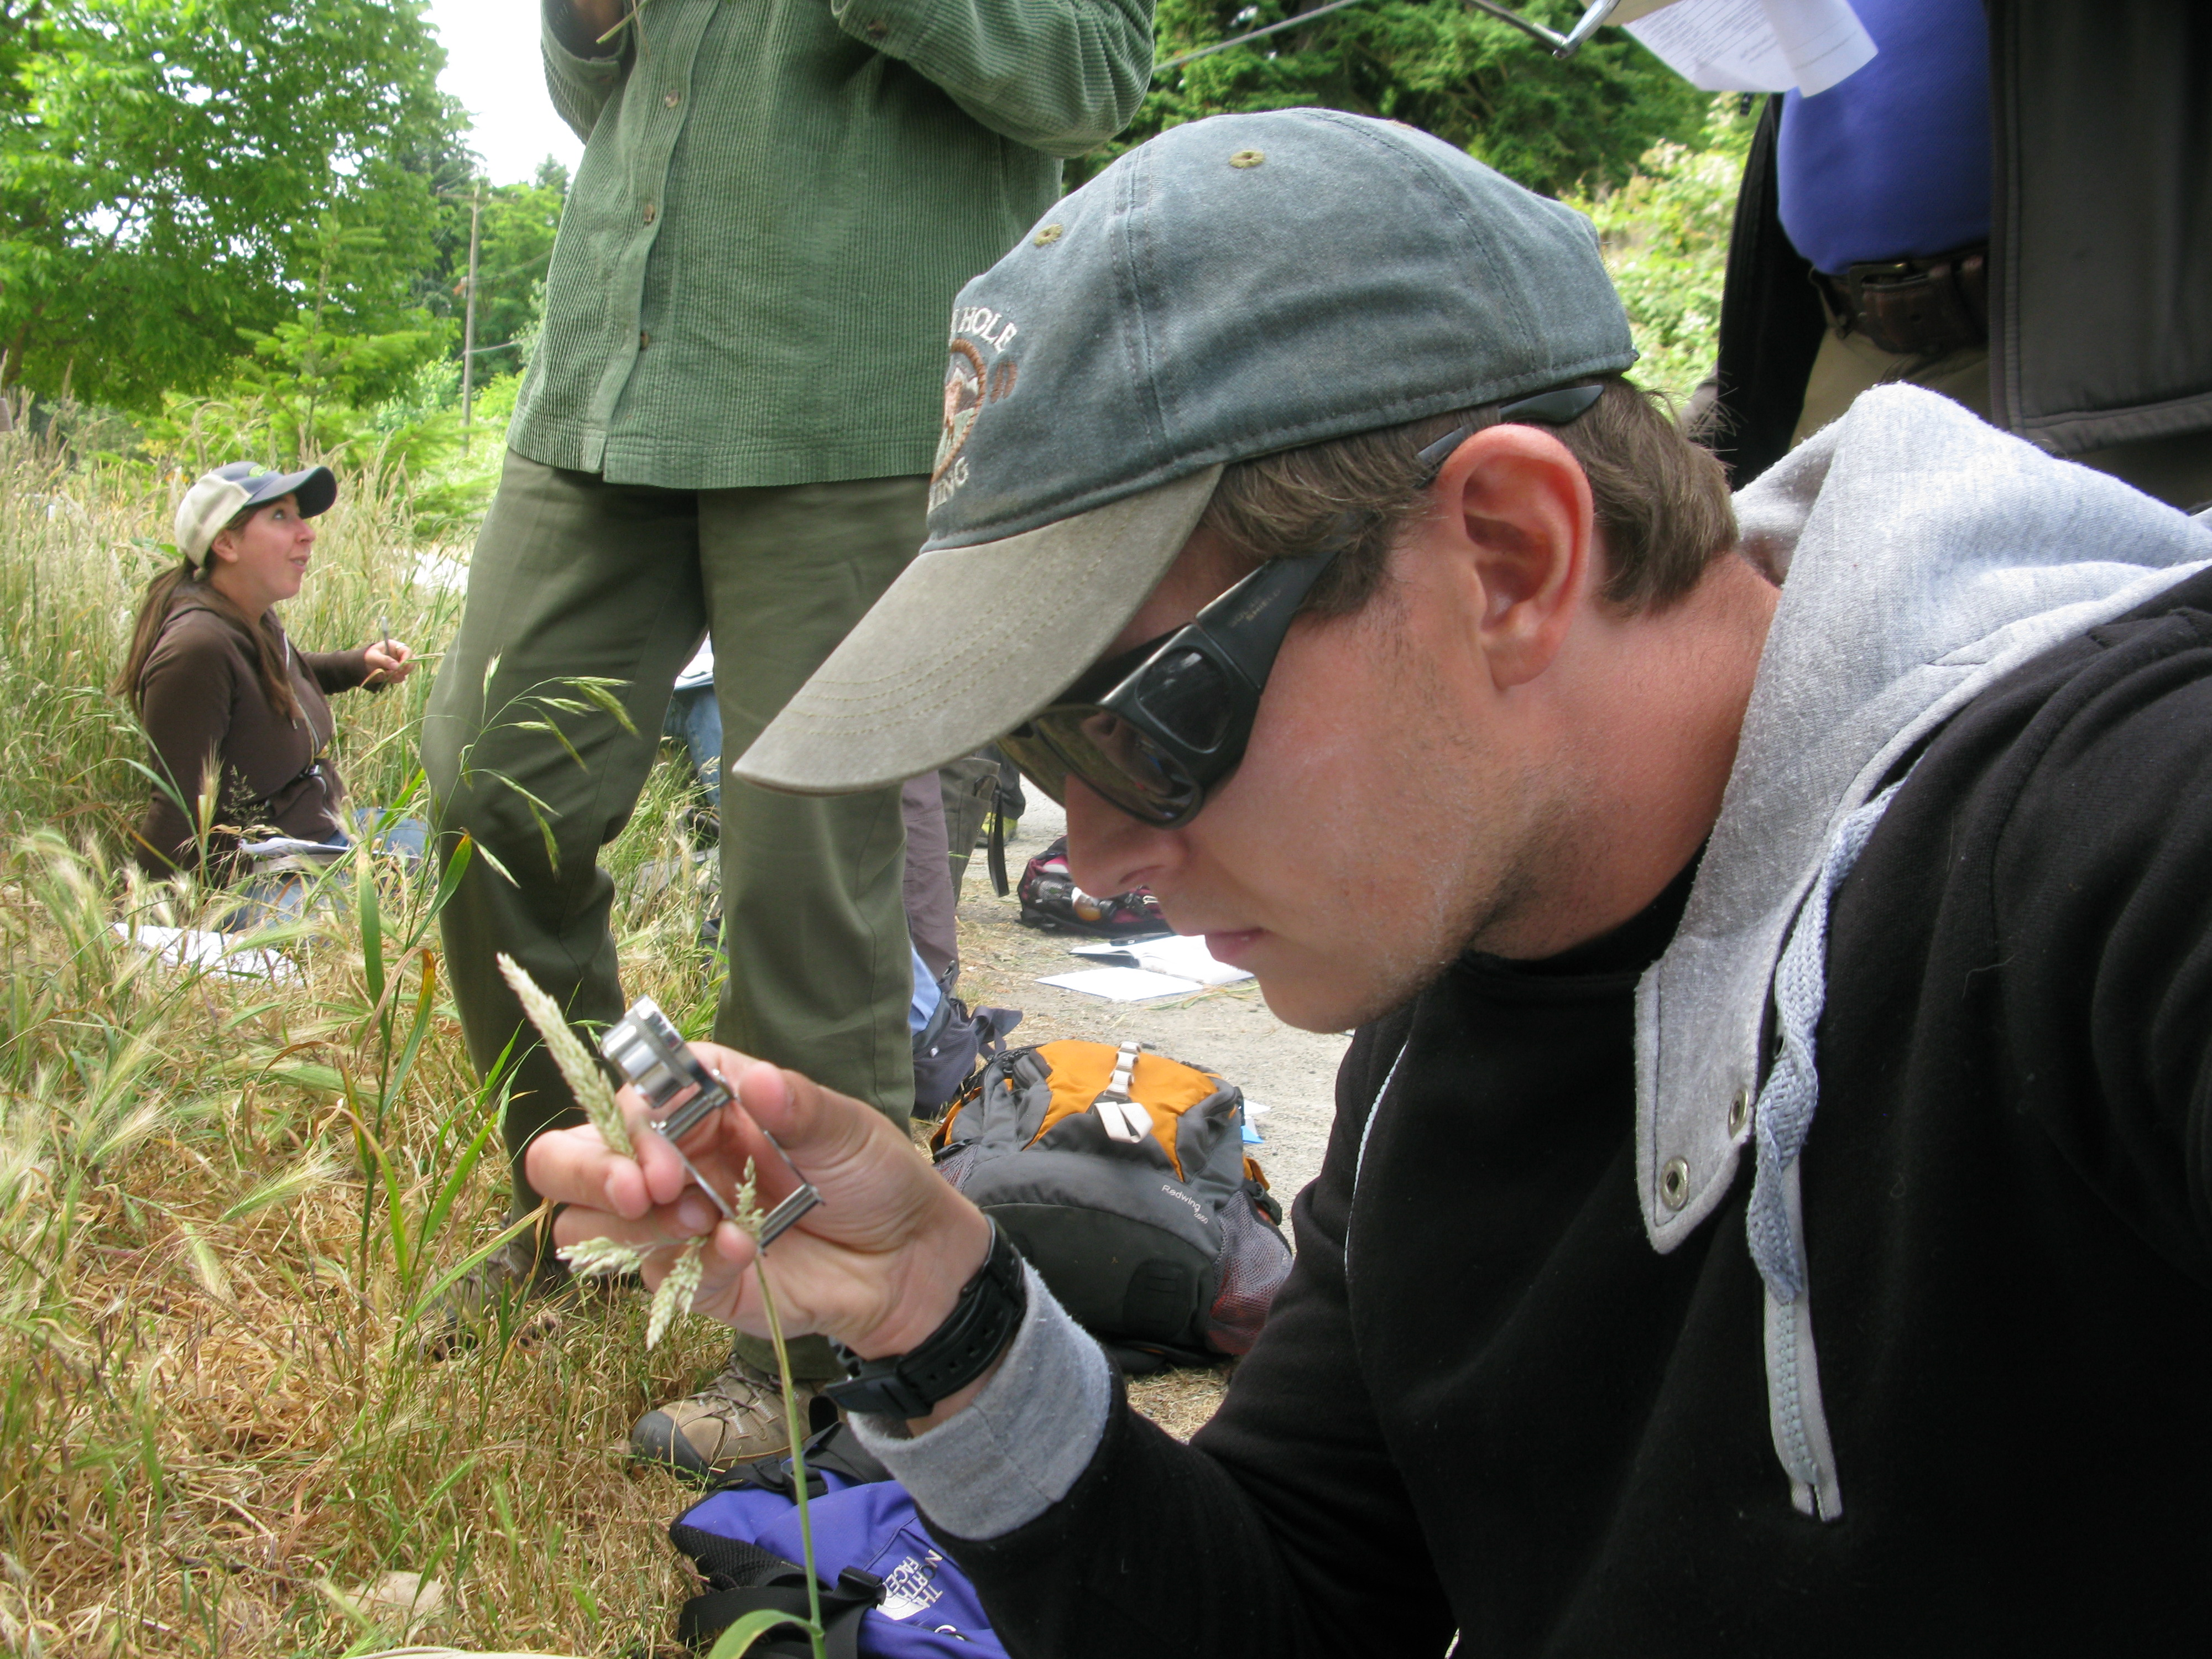 Grass identification is serious business!